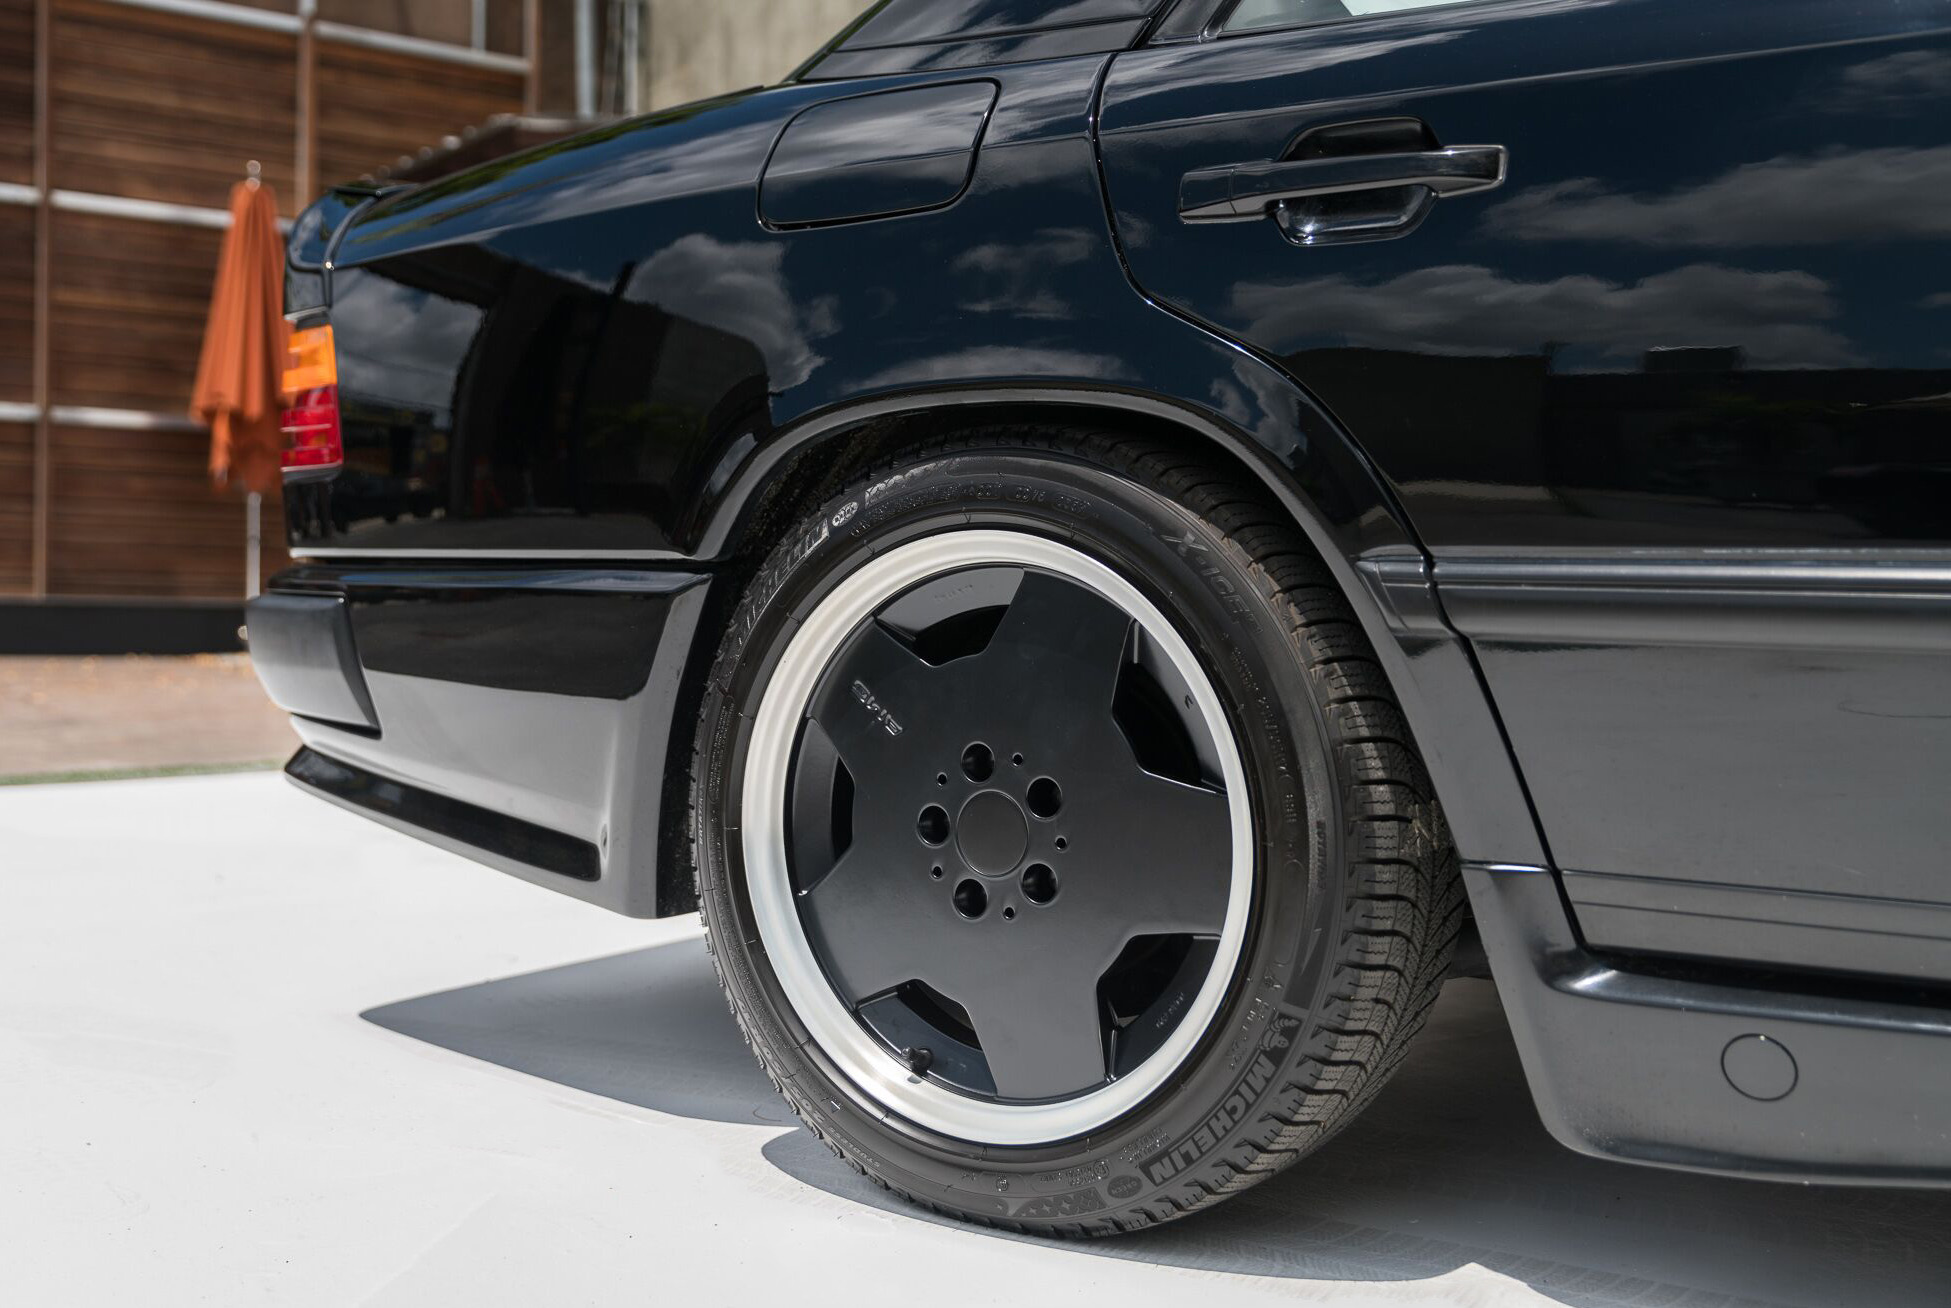 1986 Mercedes AMG Hammer For Sale | Curated | Vintage